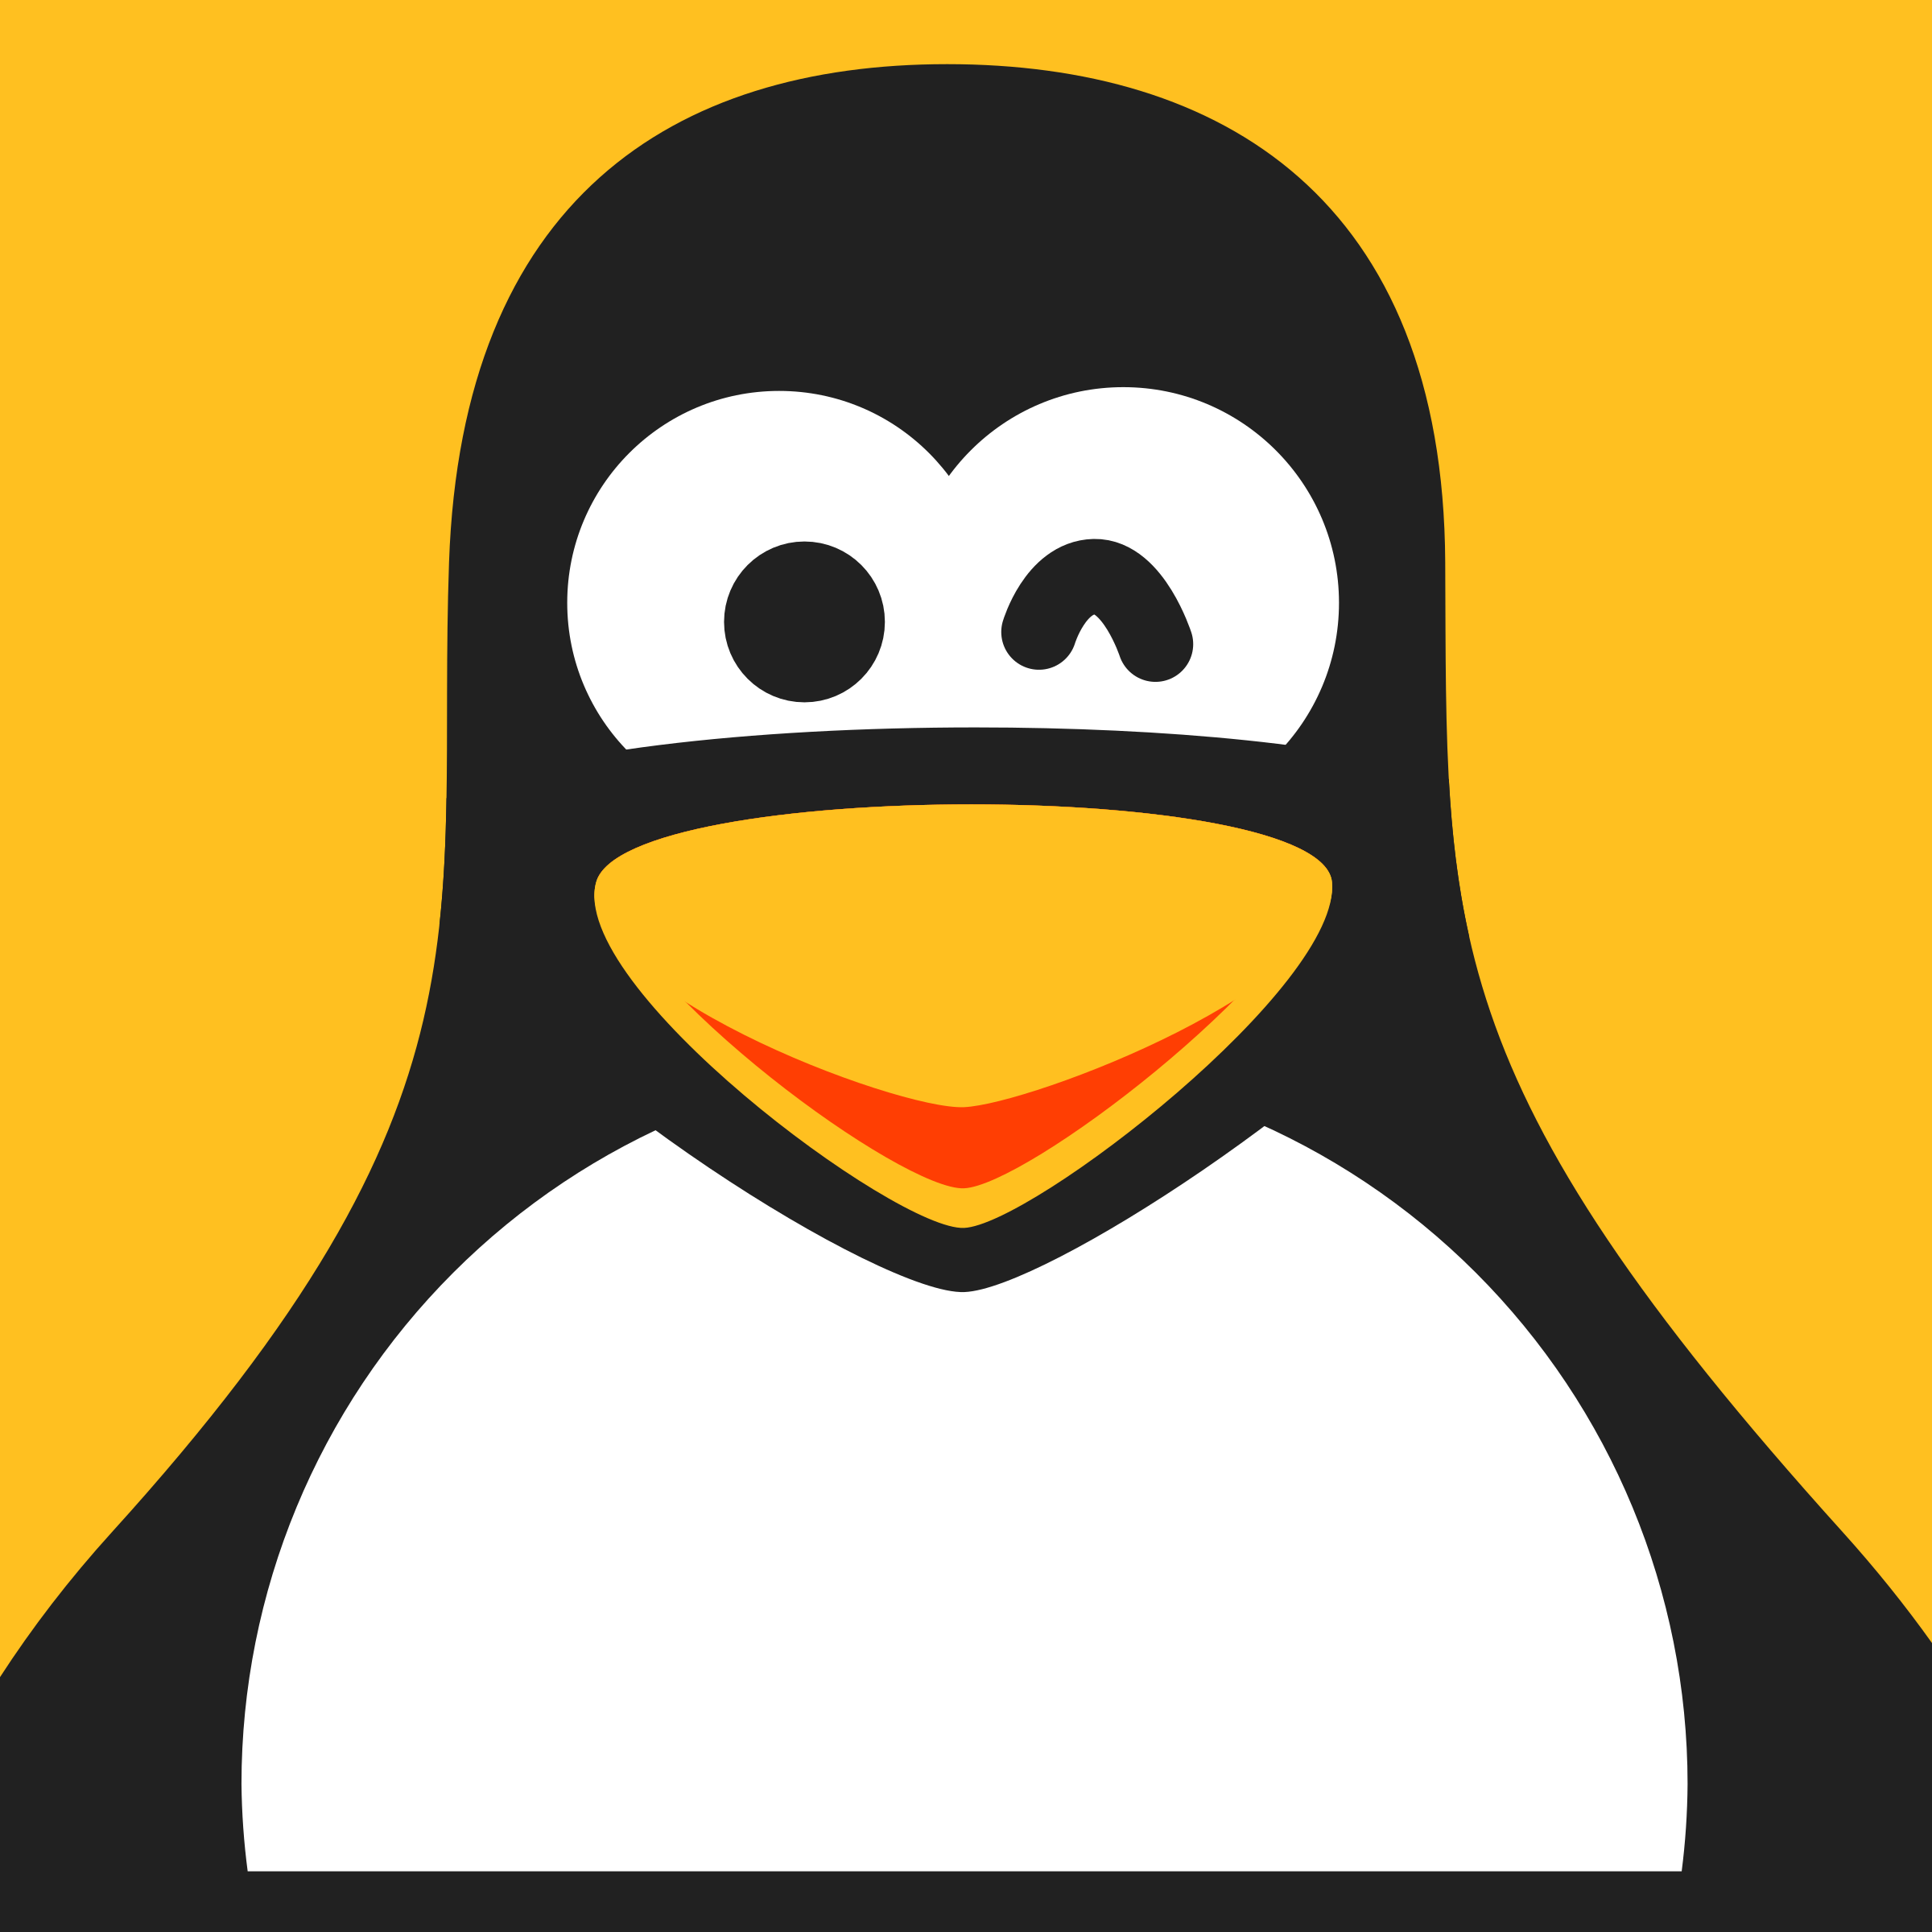 Linux Smiley by qubodup